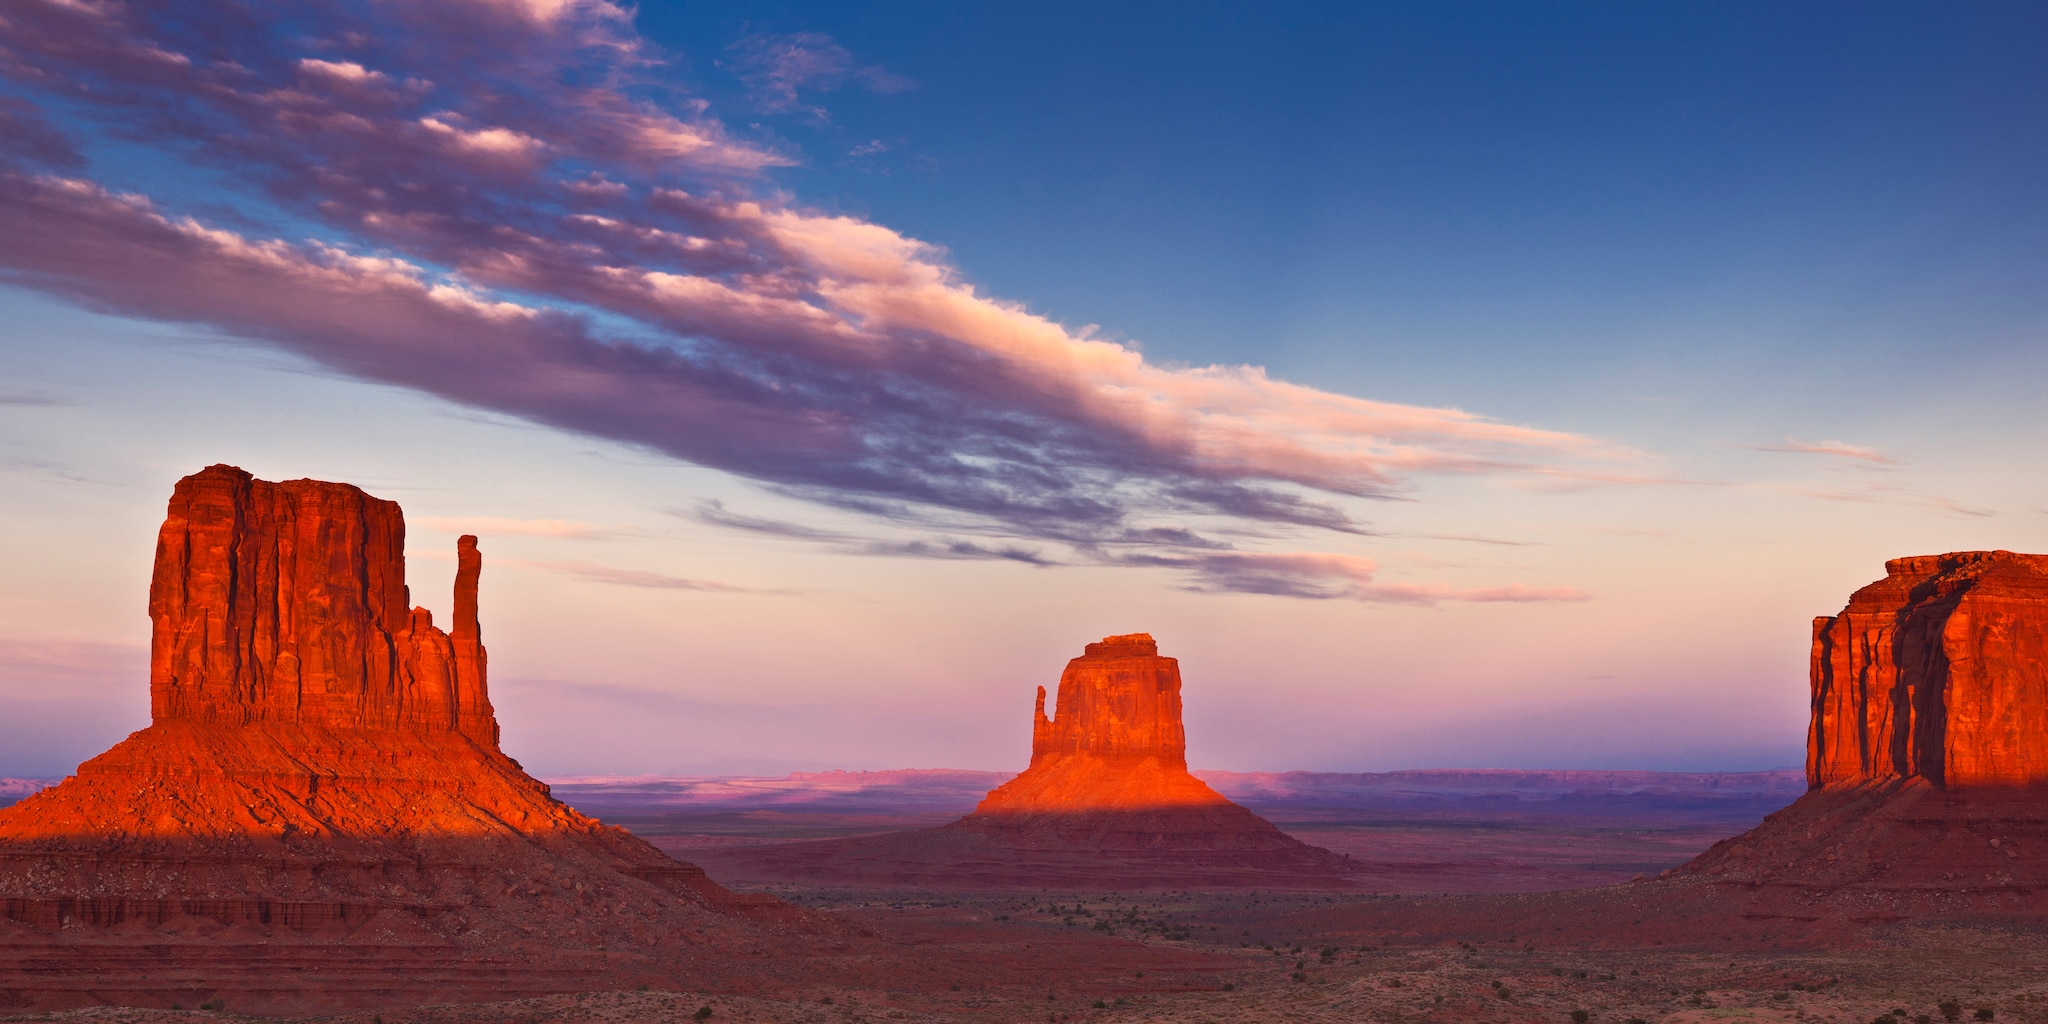 Sunset over Monument Valley's panorama of sandstone buttes